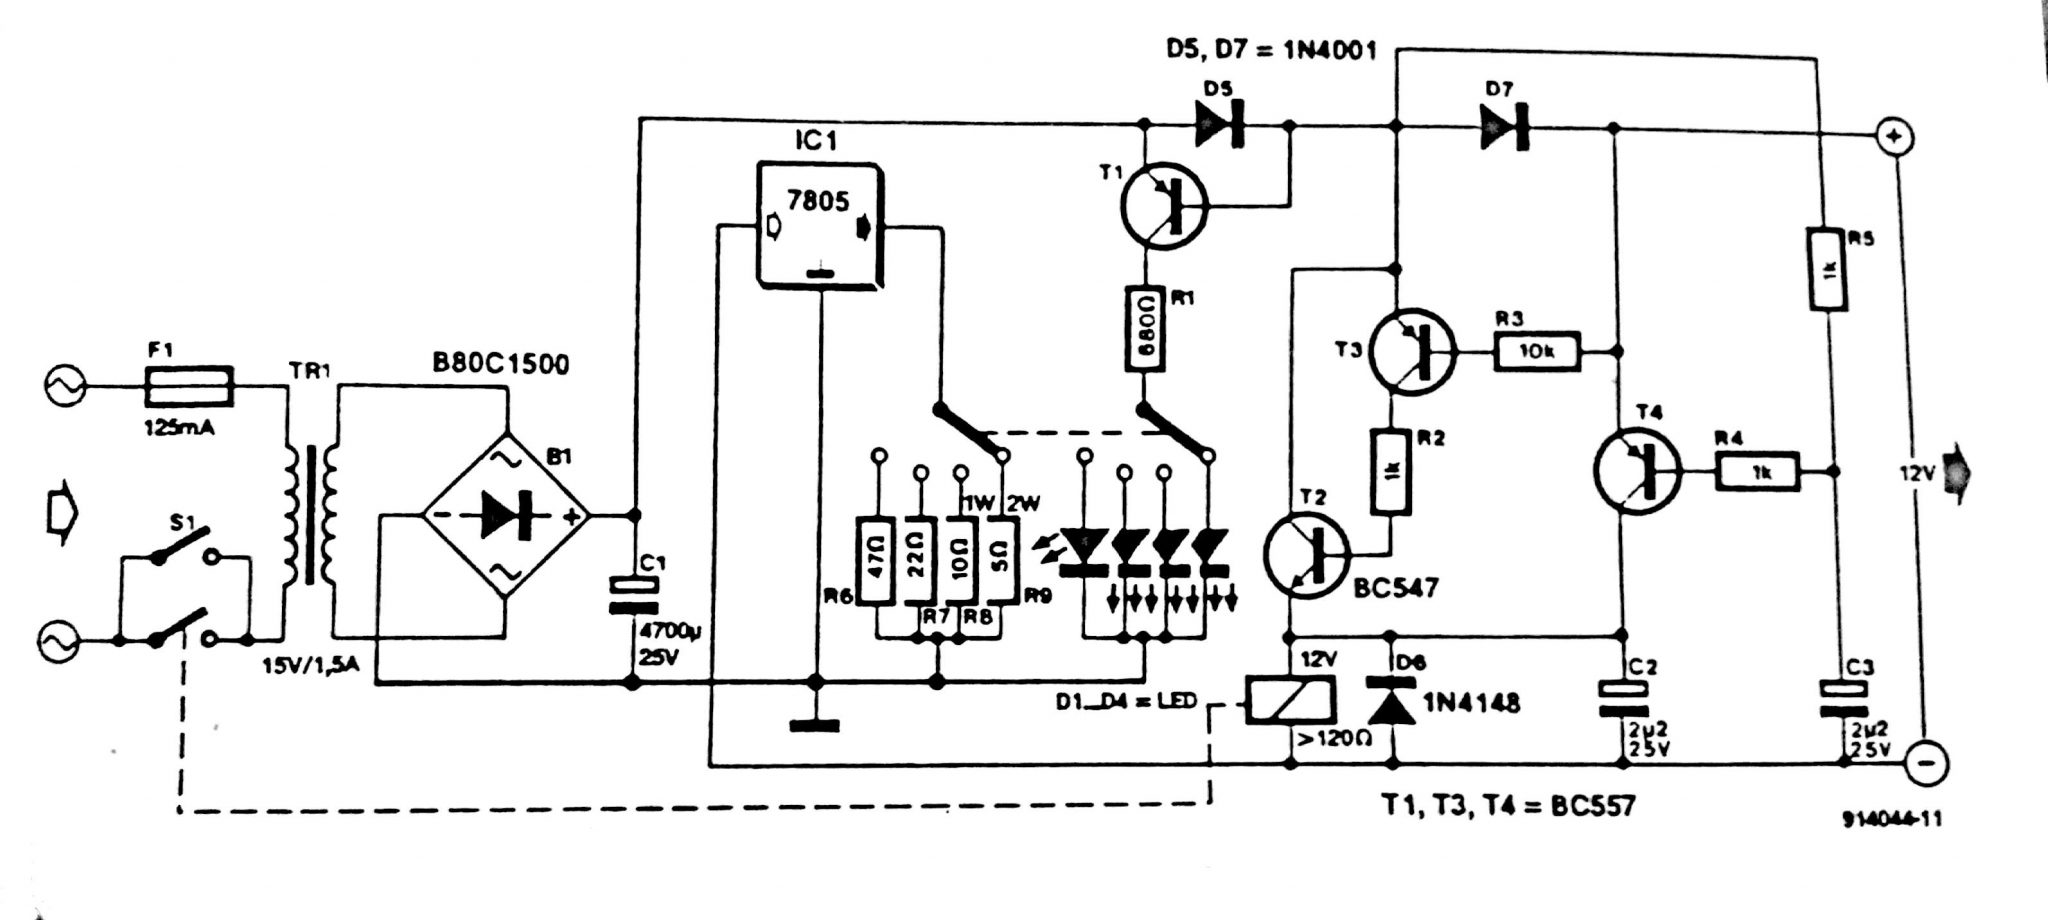 Automatic battery charger circuit diagram circuit diagramz automatic battery charger circuit diagram ccuart Gallery